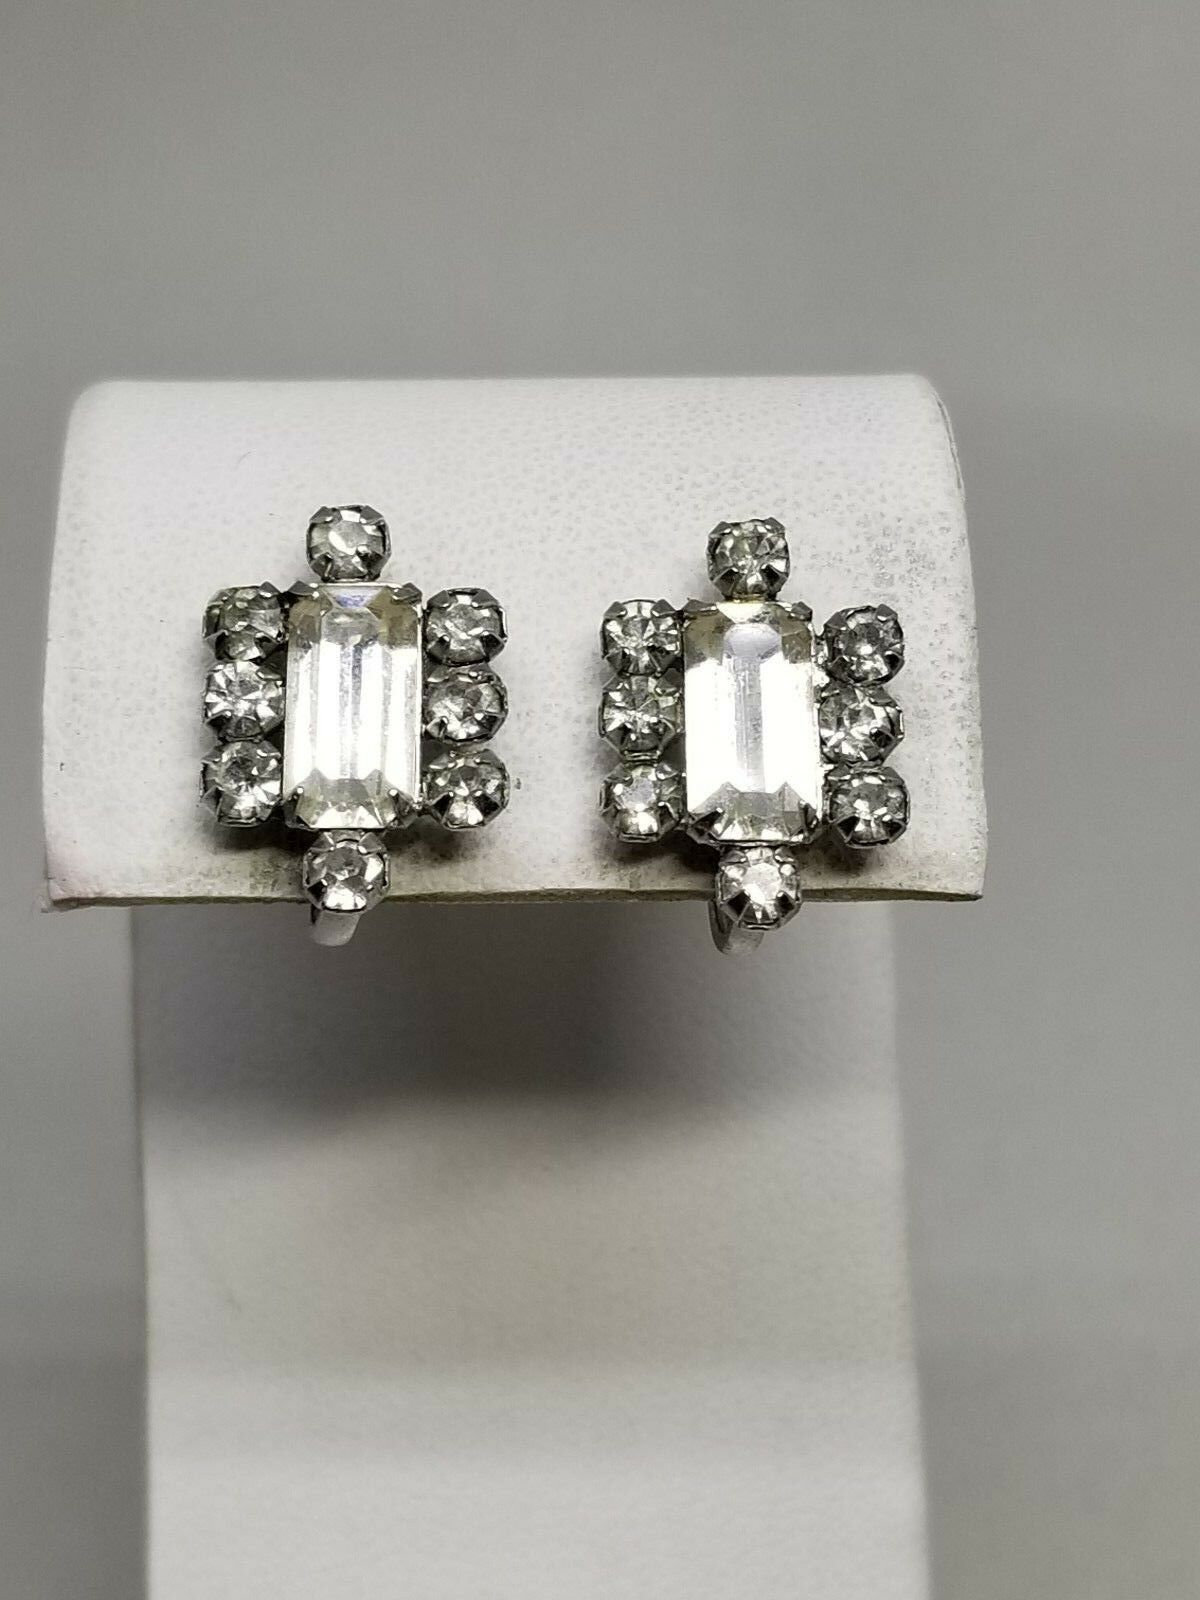 Vintage Rhinestone Screw in Earrings from 1940s